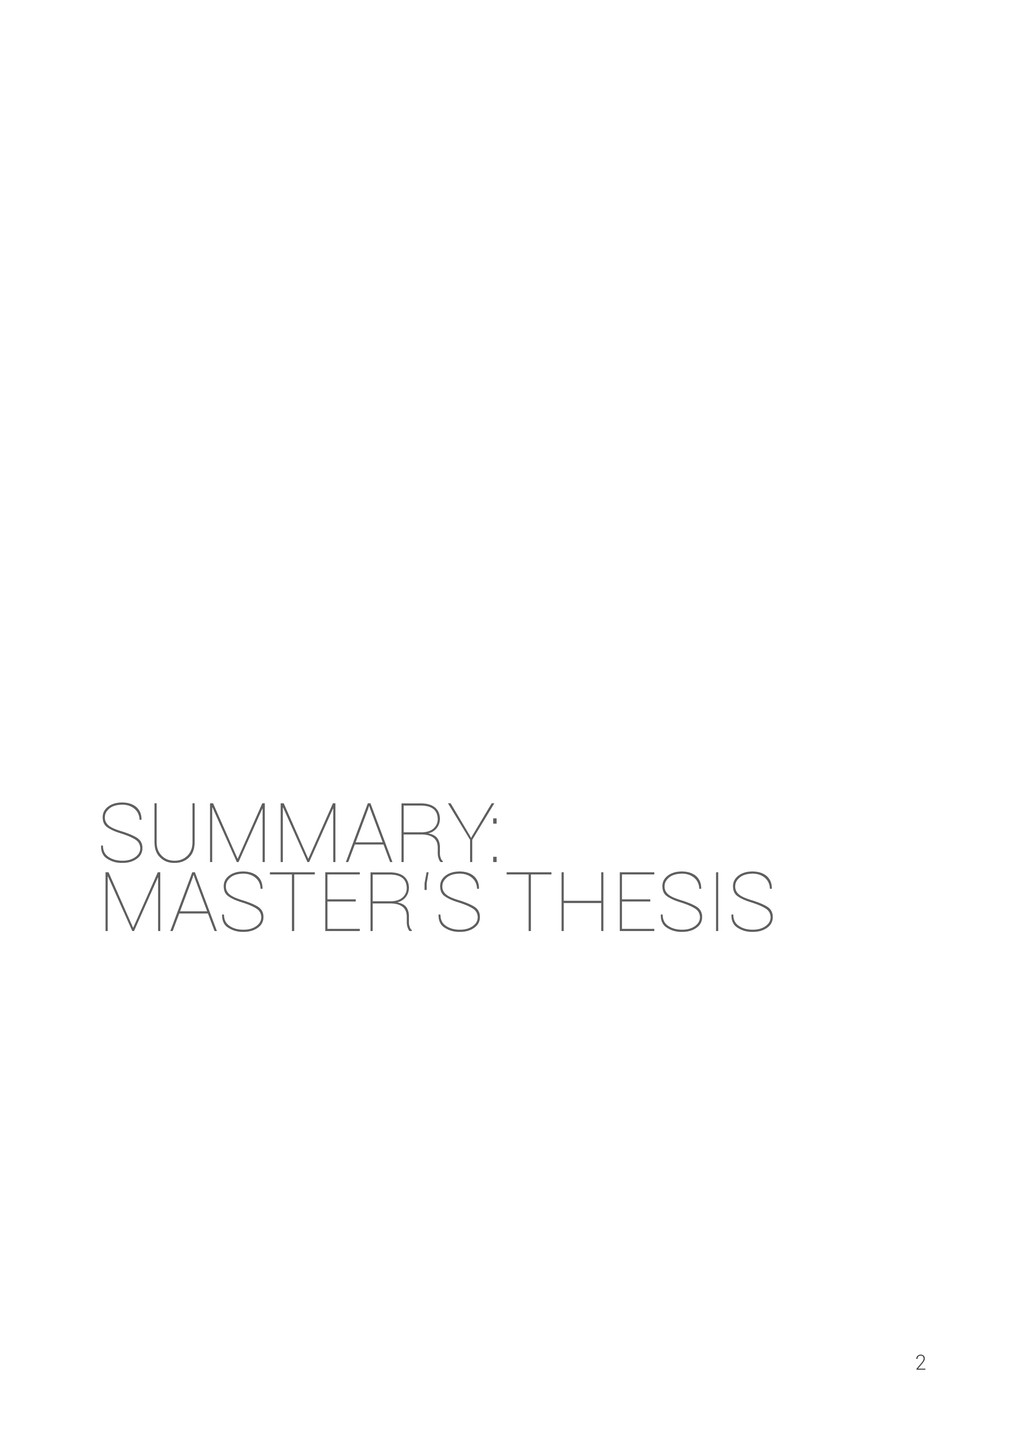 SUMMARY: MASTER'S THESIS 2